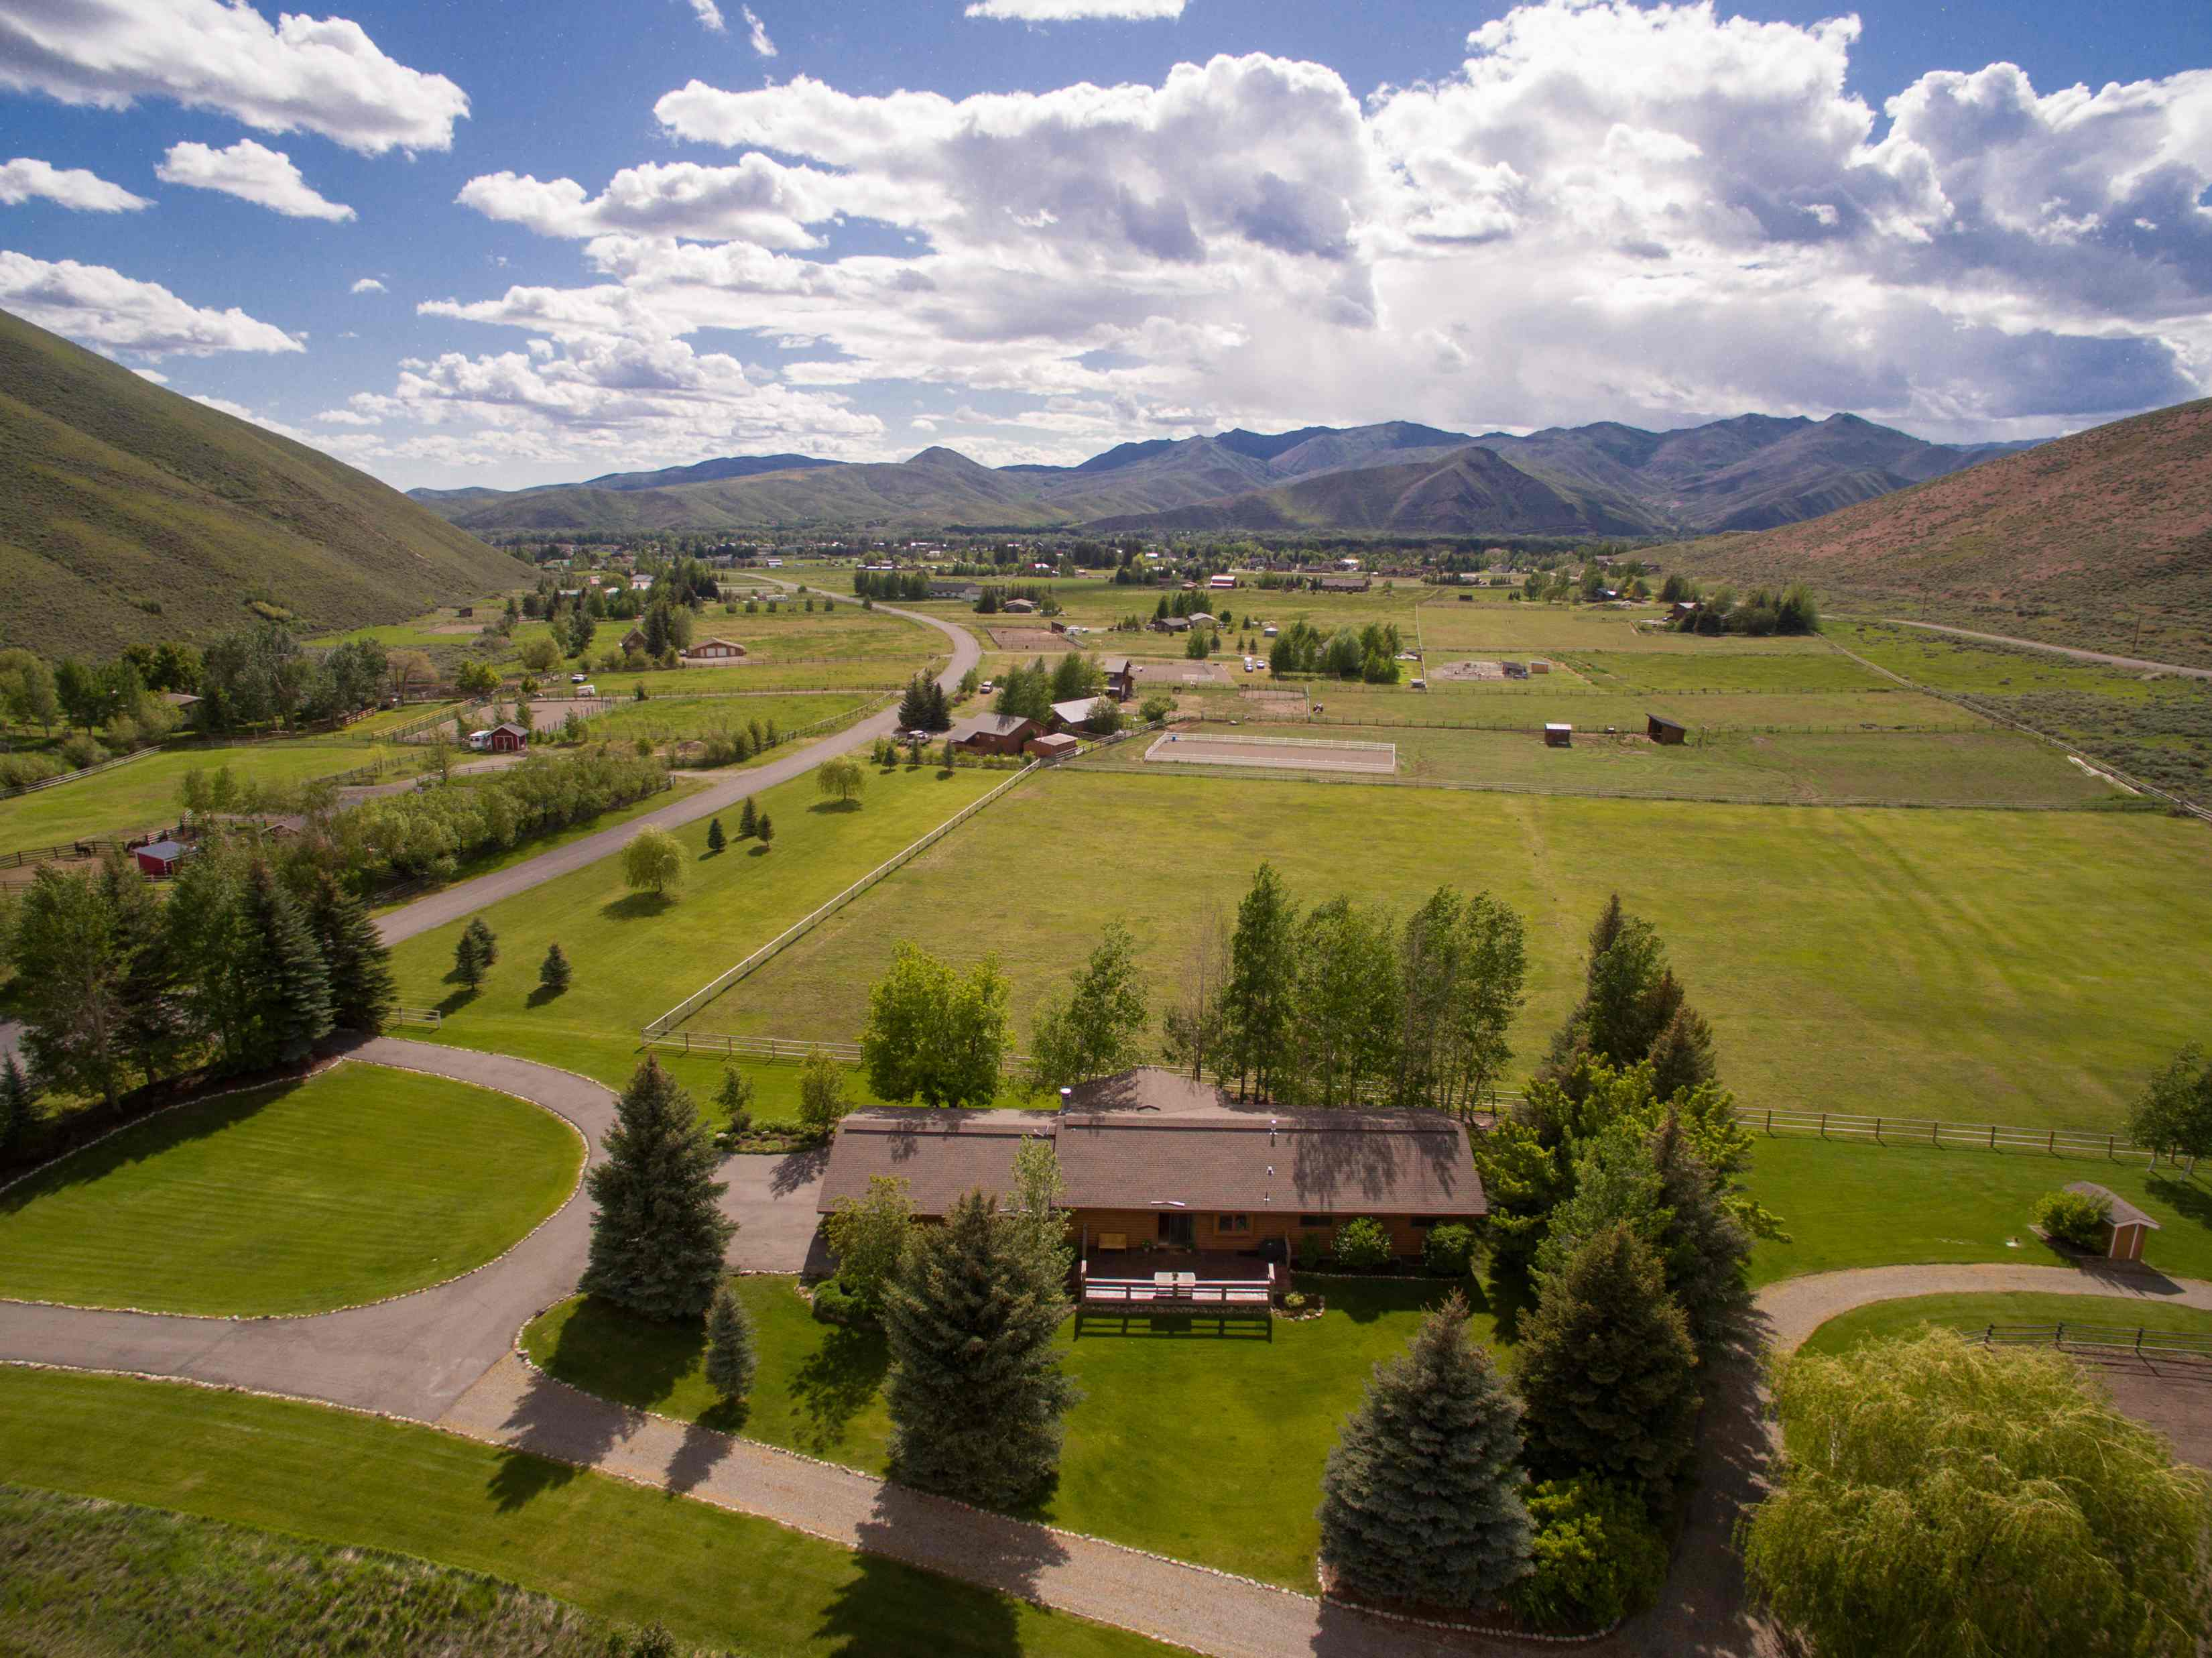 Ferme / Ranch / Plantation pour l Vente à Muldoon Ranch 325 Bayhorse Bellevue, Idaho, 83313 États-Unis